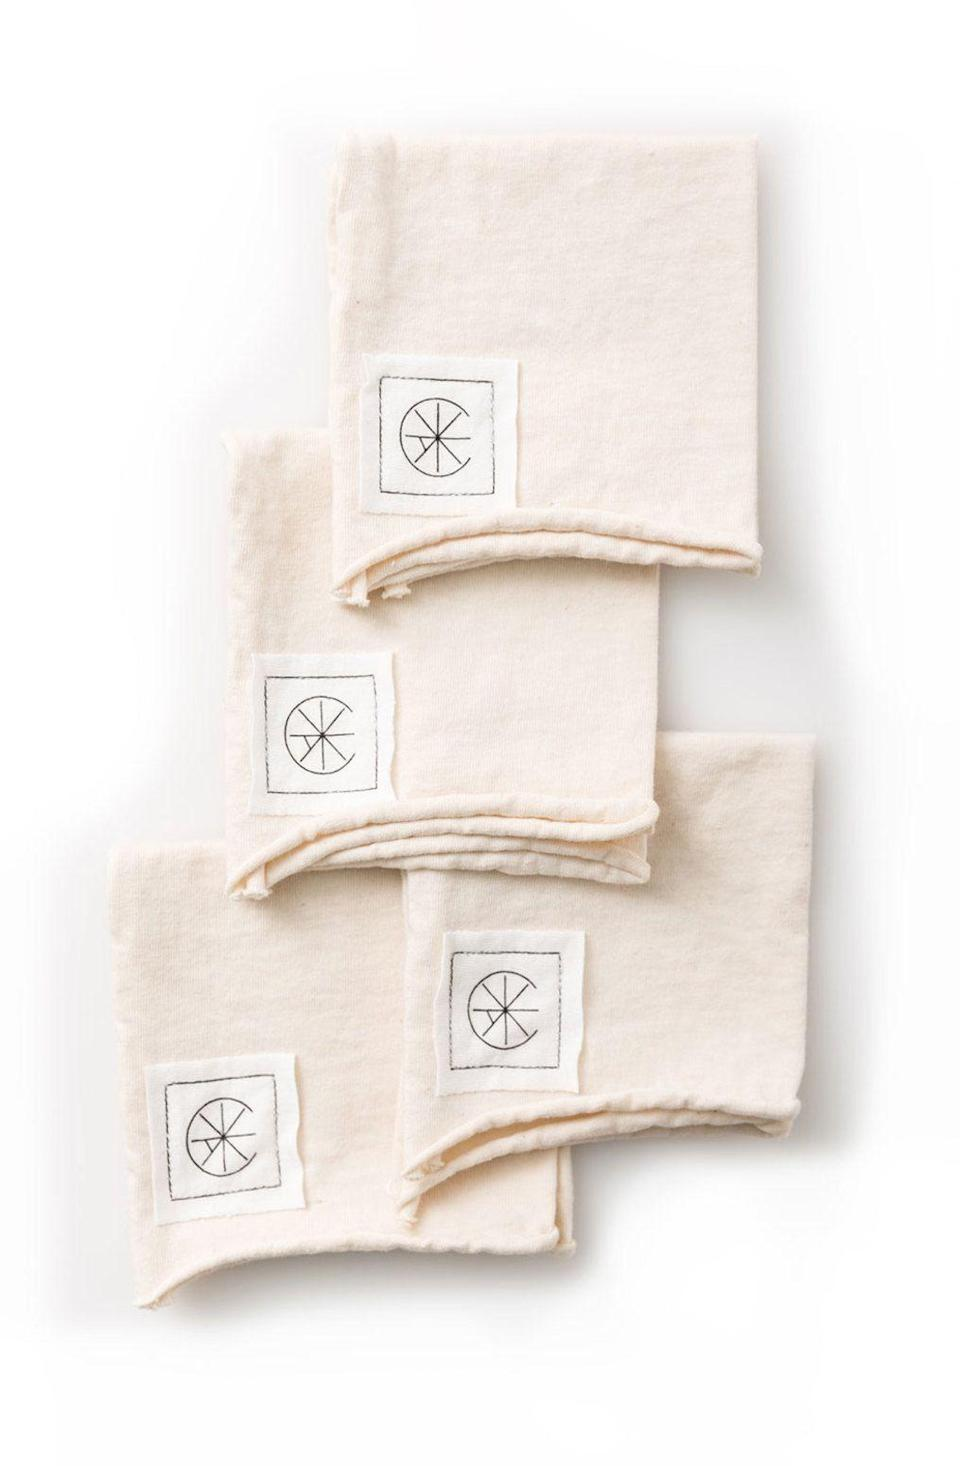 """<p><strong>Alabama Chanin</strong></p><p>alabamachanin.com</p><p><strong>$38.00</strong></p><p><a href=""""https://alabamachanin.com/products/cotton-cocktail-napkins?taxon_id=18"""" rel=""""nofollow noopener"""" target=""""_blank"""" data-ylk=""""slk:Discover"""" class=""""link rapid-noclick-resp"""">Discover</a></p><p><a href=""""https://alabamachanin.com/"""" rel=""""nofollow noopener"""" target=""""_blank"""" data-ylk=""""slk:Alabama Chanin's"""" class=""""link rapid-noclick-resp"""">Alabama Chanin's</a> organic jersey napkins are for laid back evenings and come in a variety of colors.</p>"""